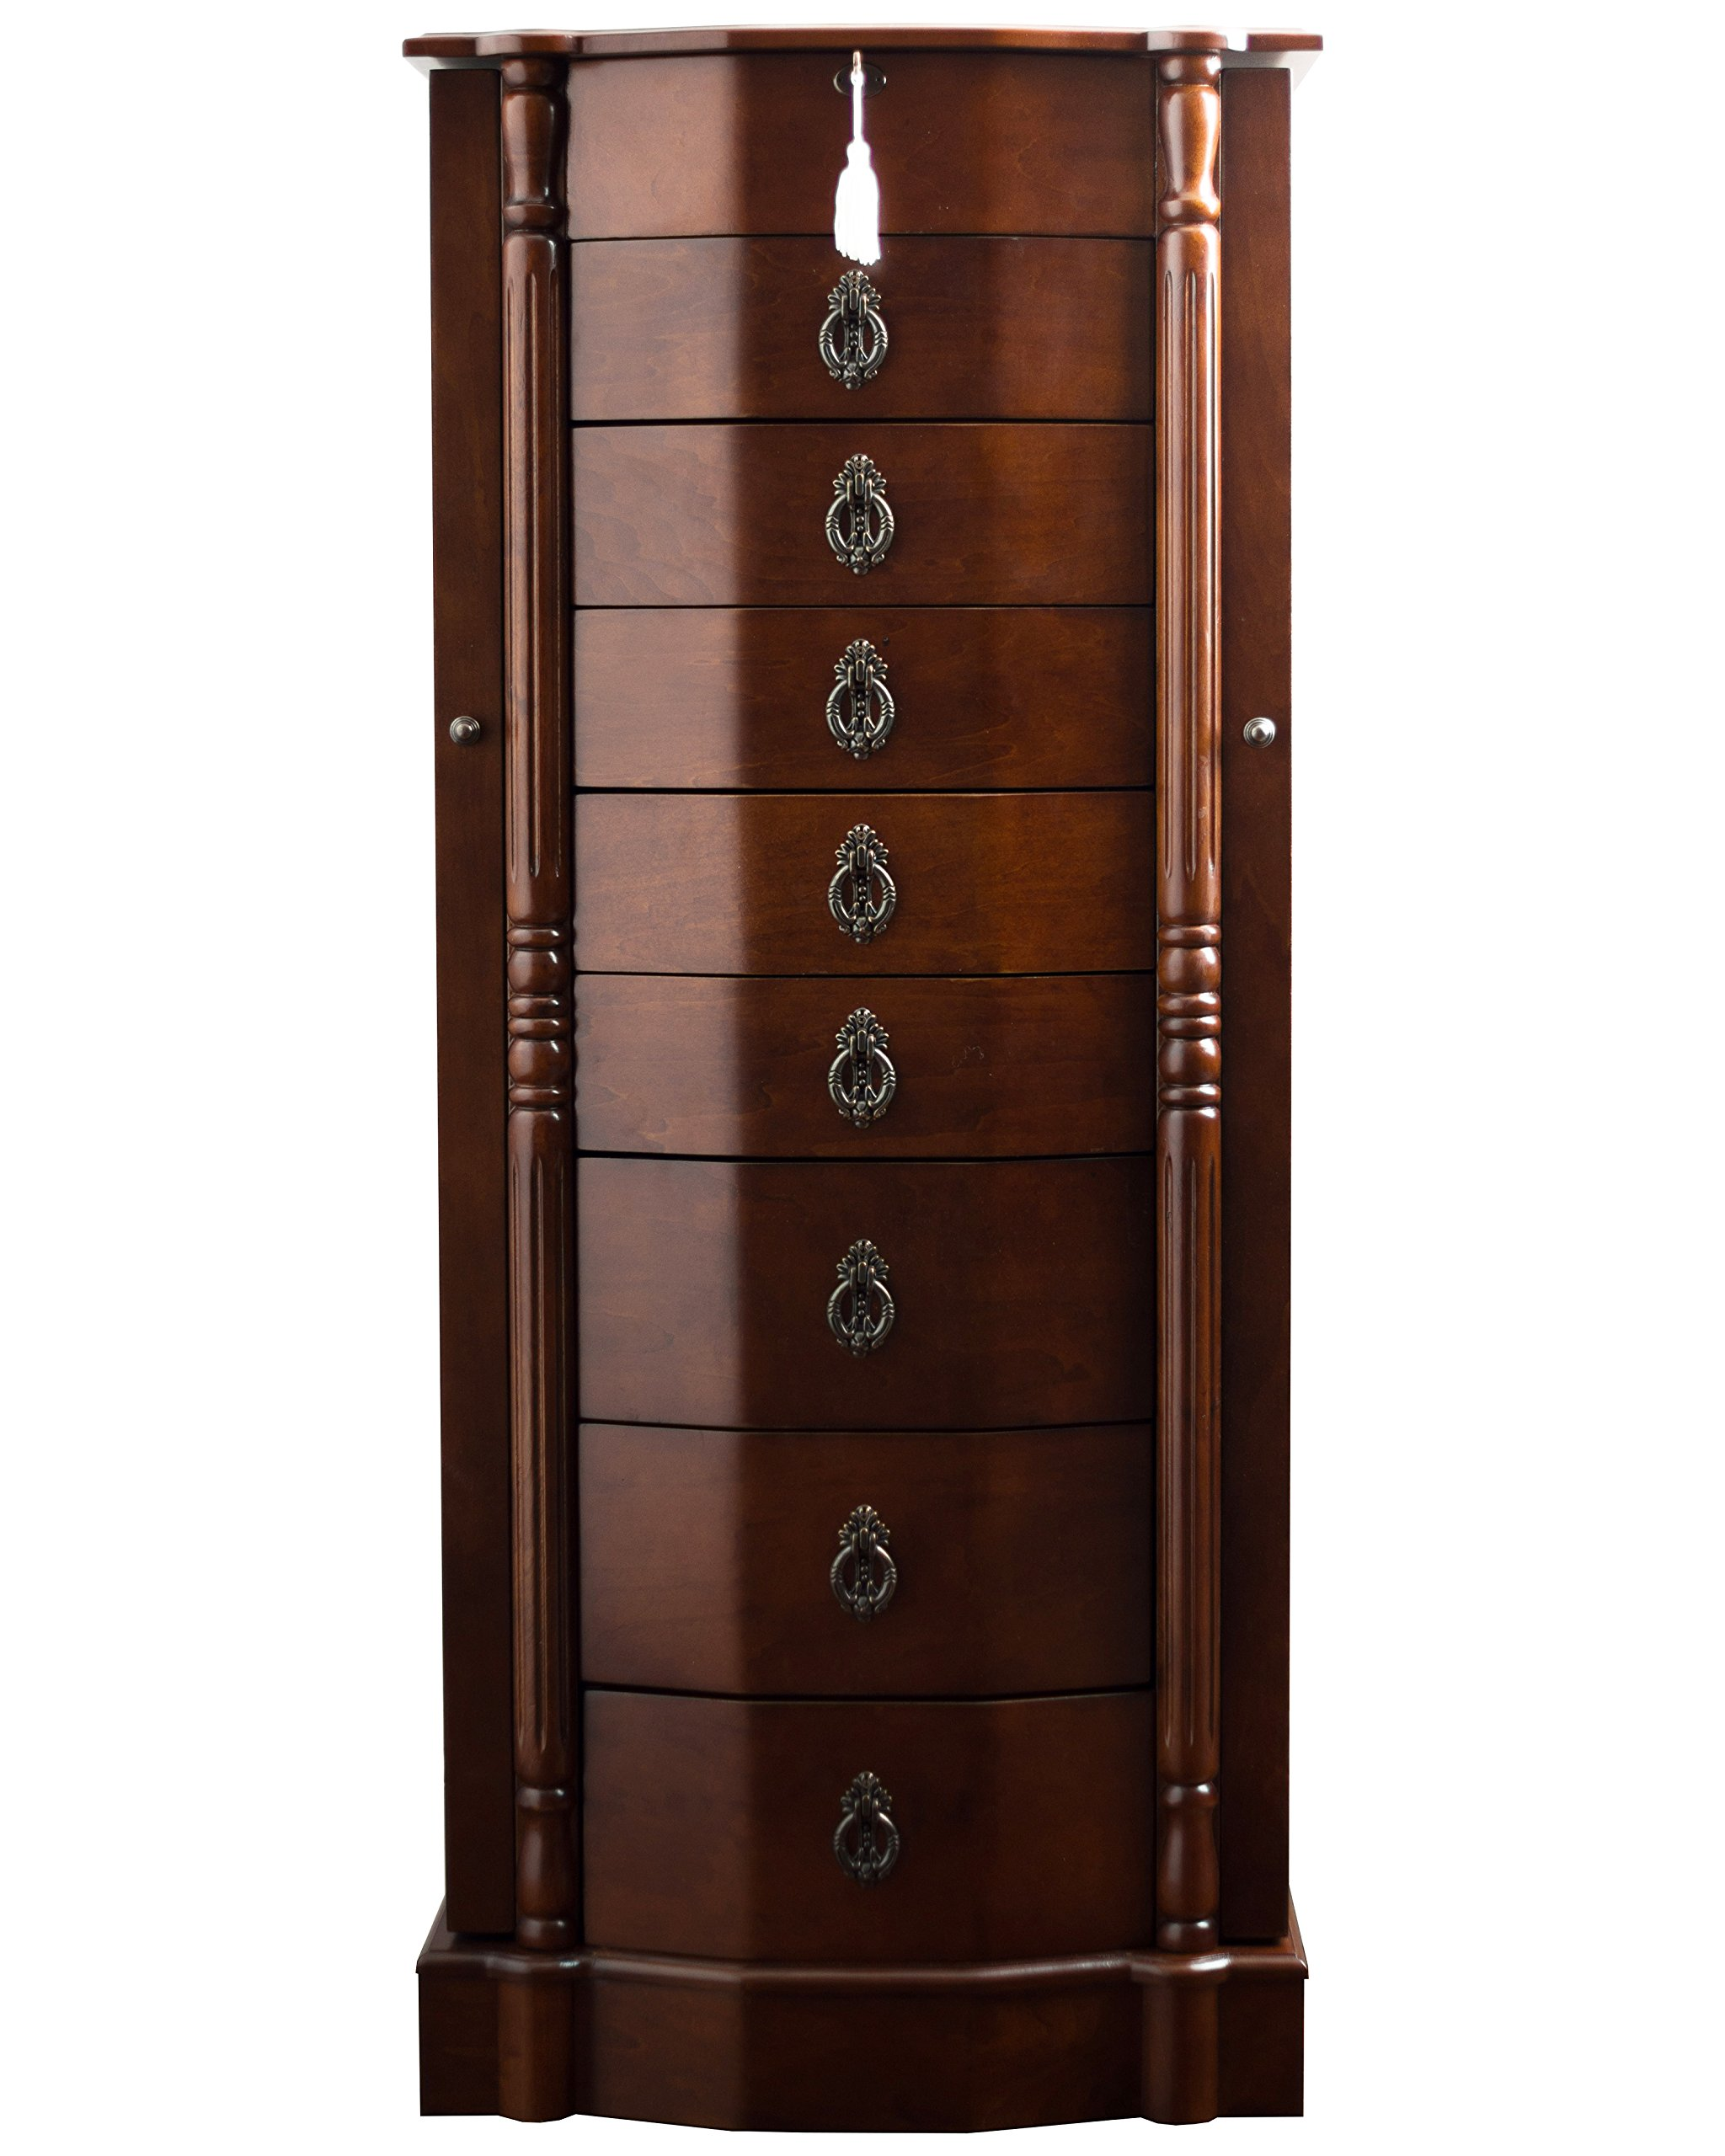 Hives and Honey 1004-382 Robyn Jewelry Armoire, 41'' H x 17.25'' W x 12.5'' D, Walnut